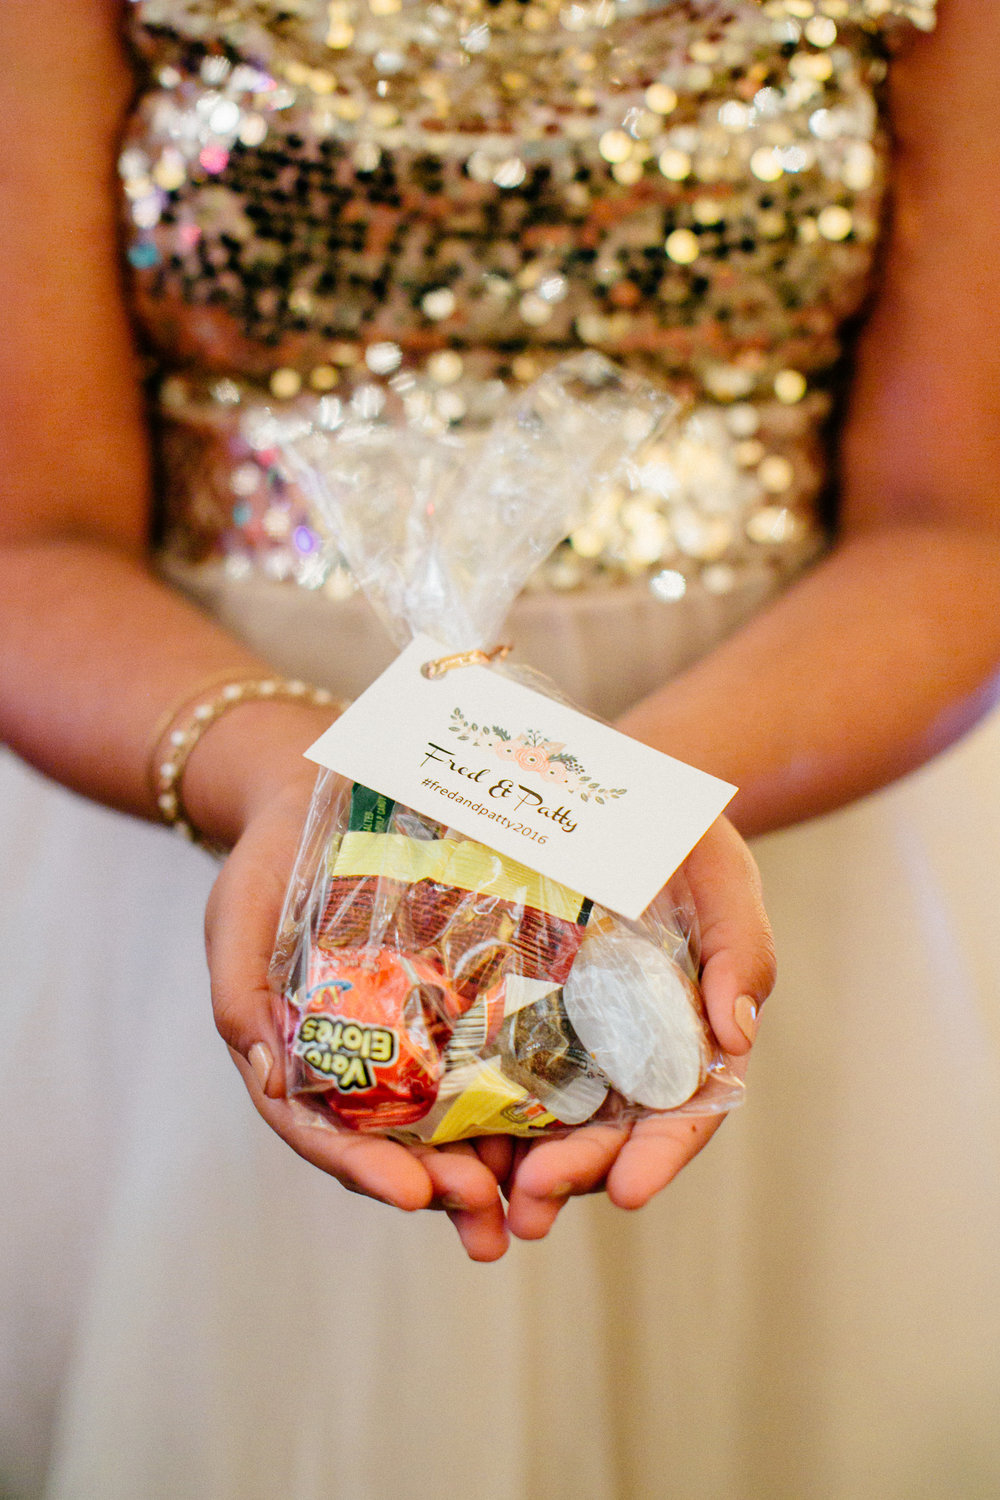 12213-elegant-country-charm-ranch-wedding-candy-favors-for-guests.jpg